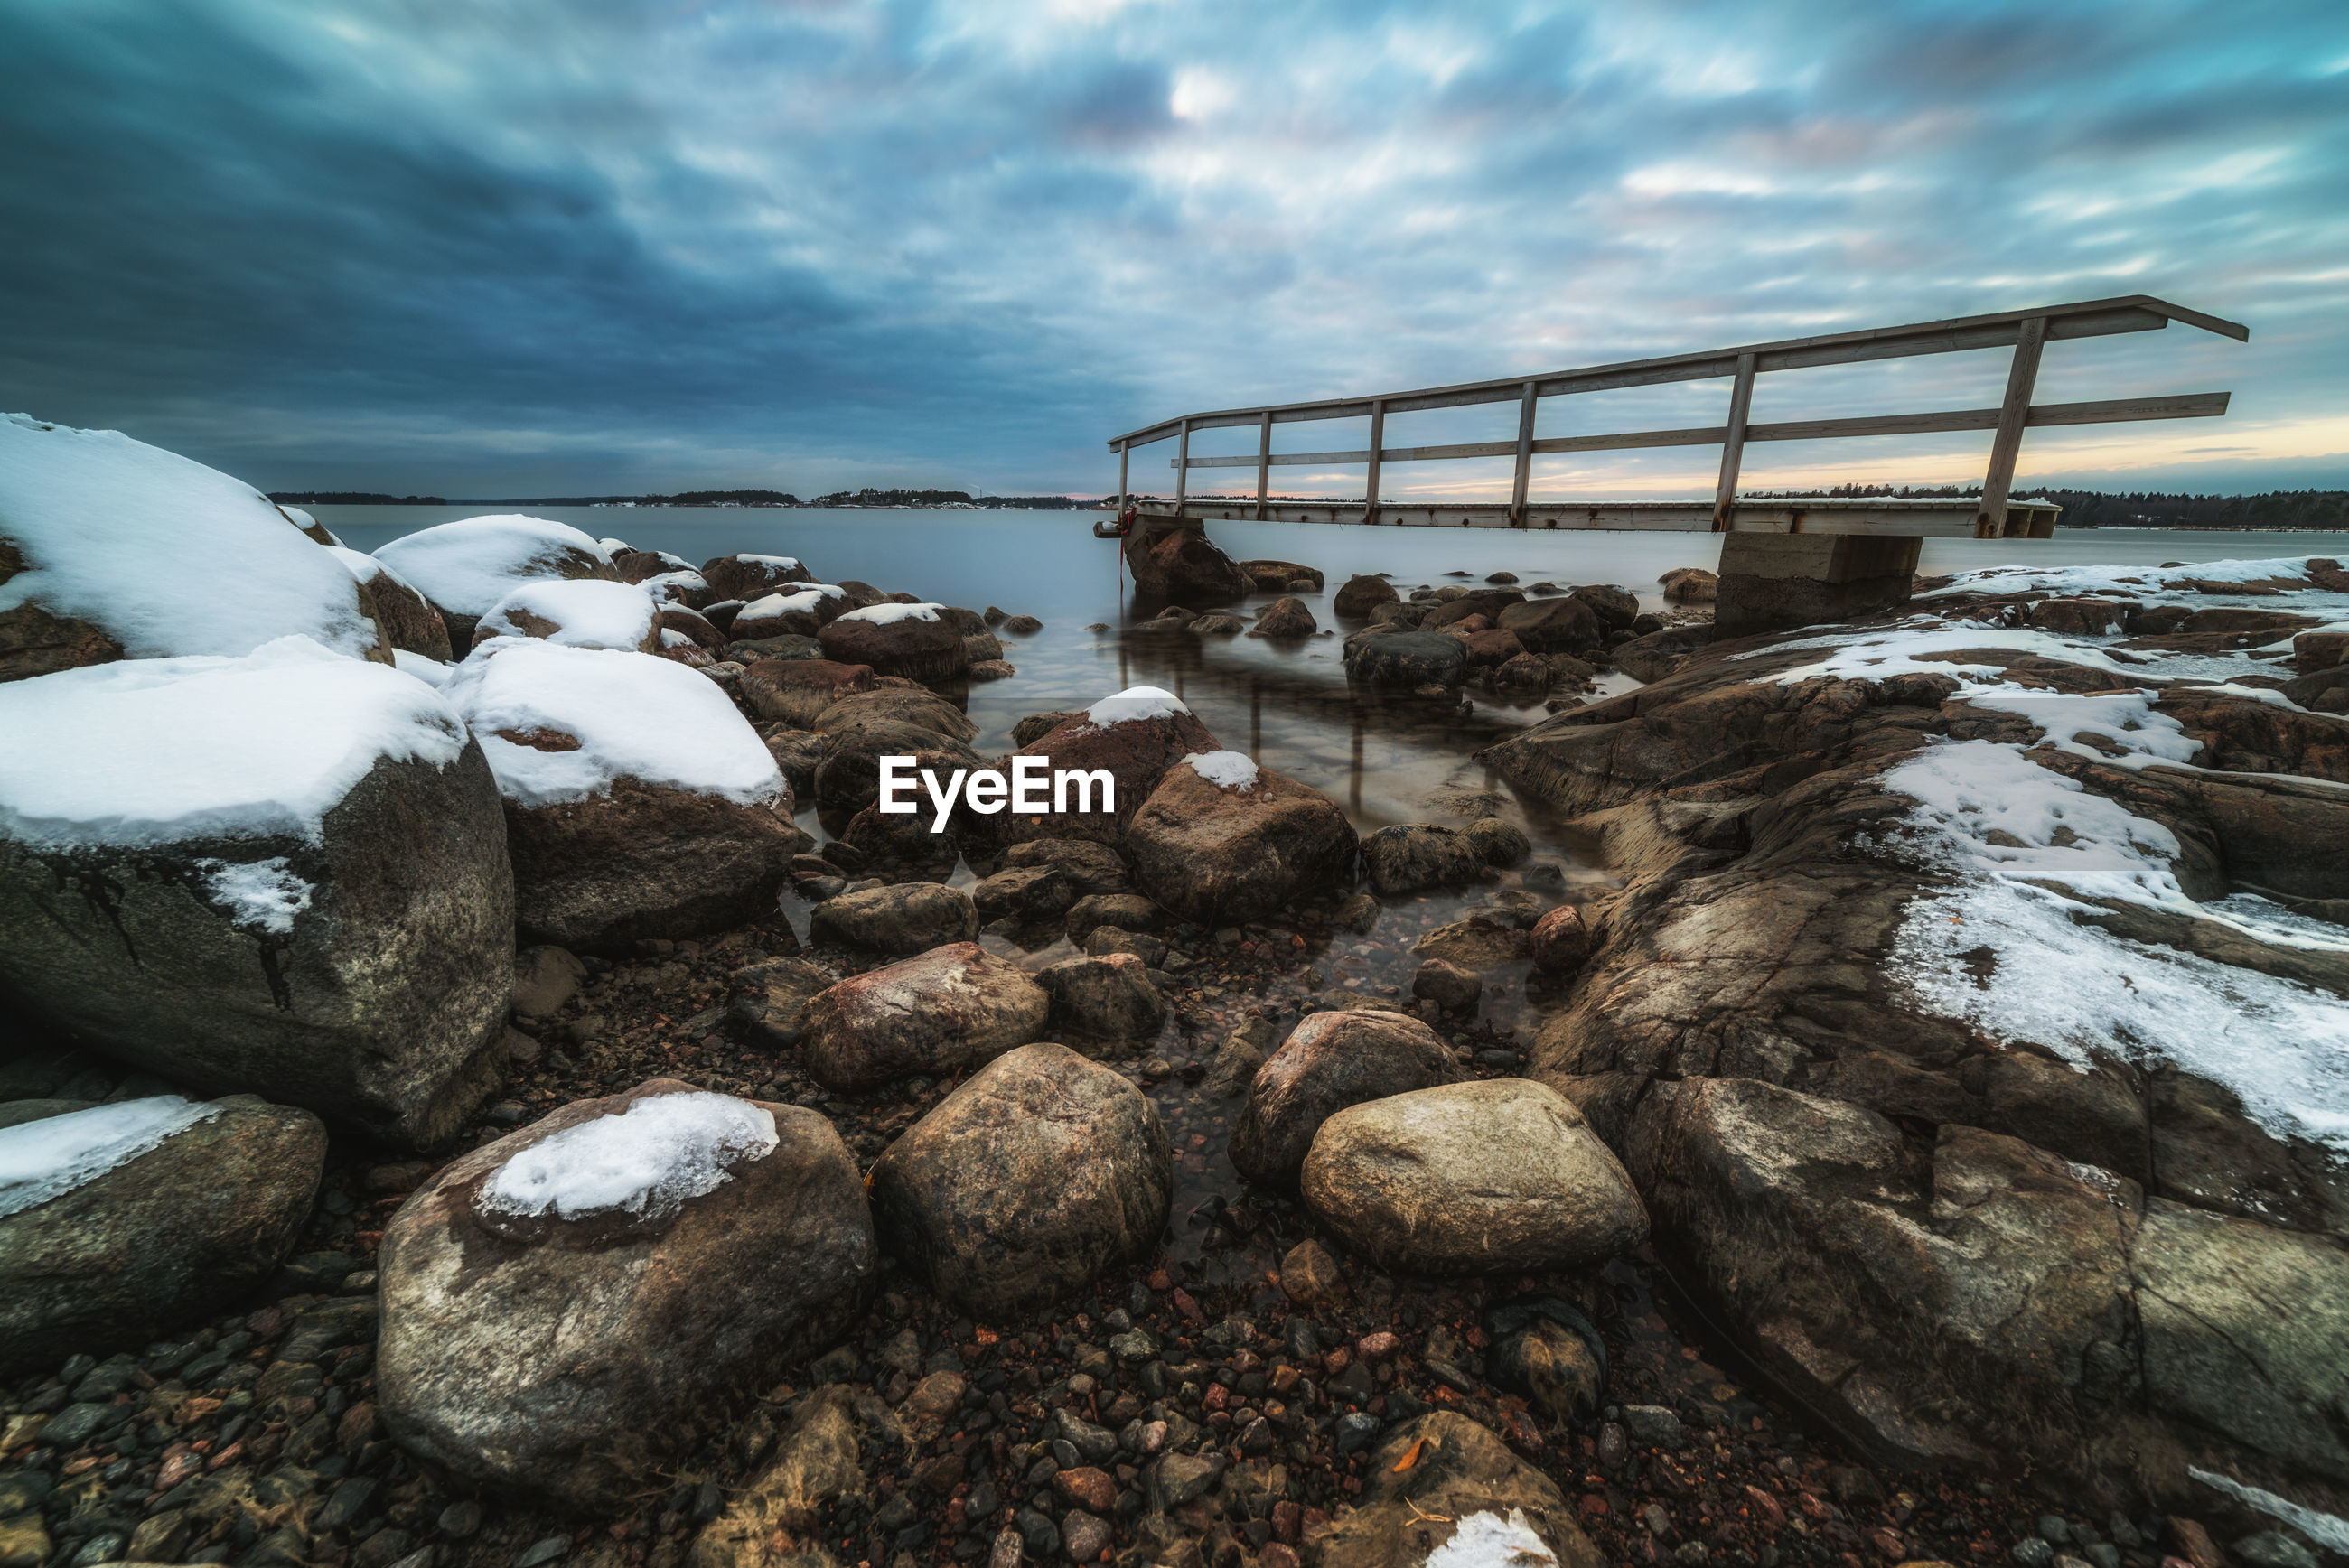 Railing on rocky coastline against cloudy sky during winter